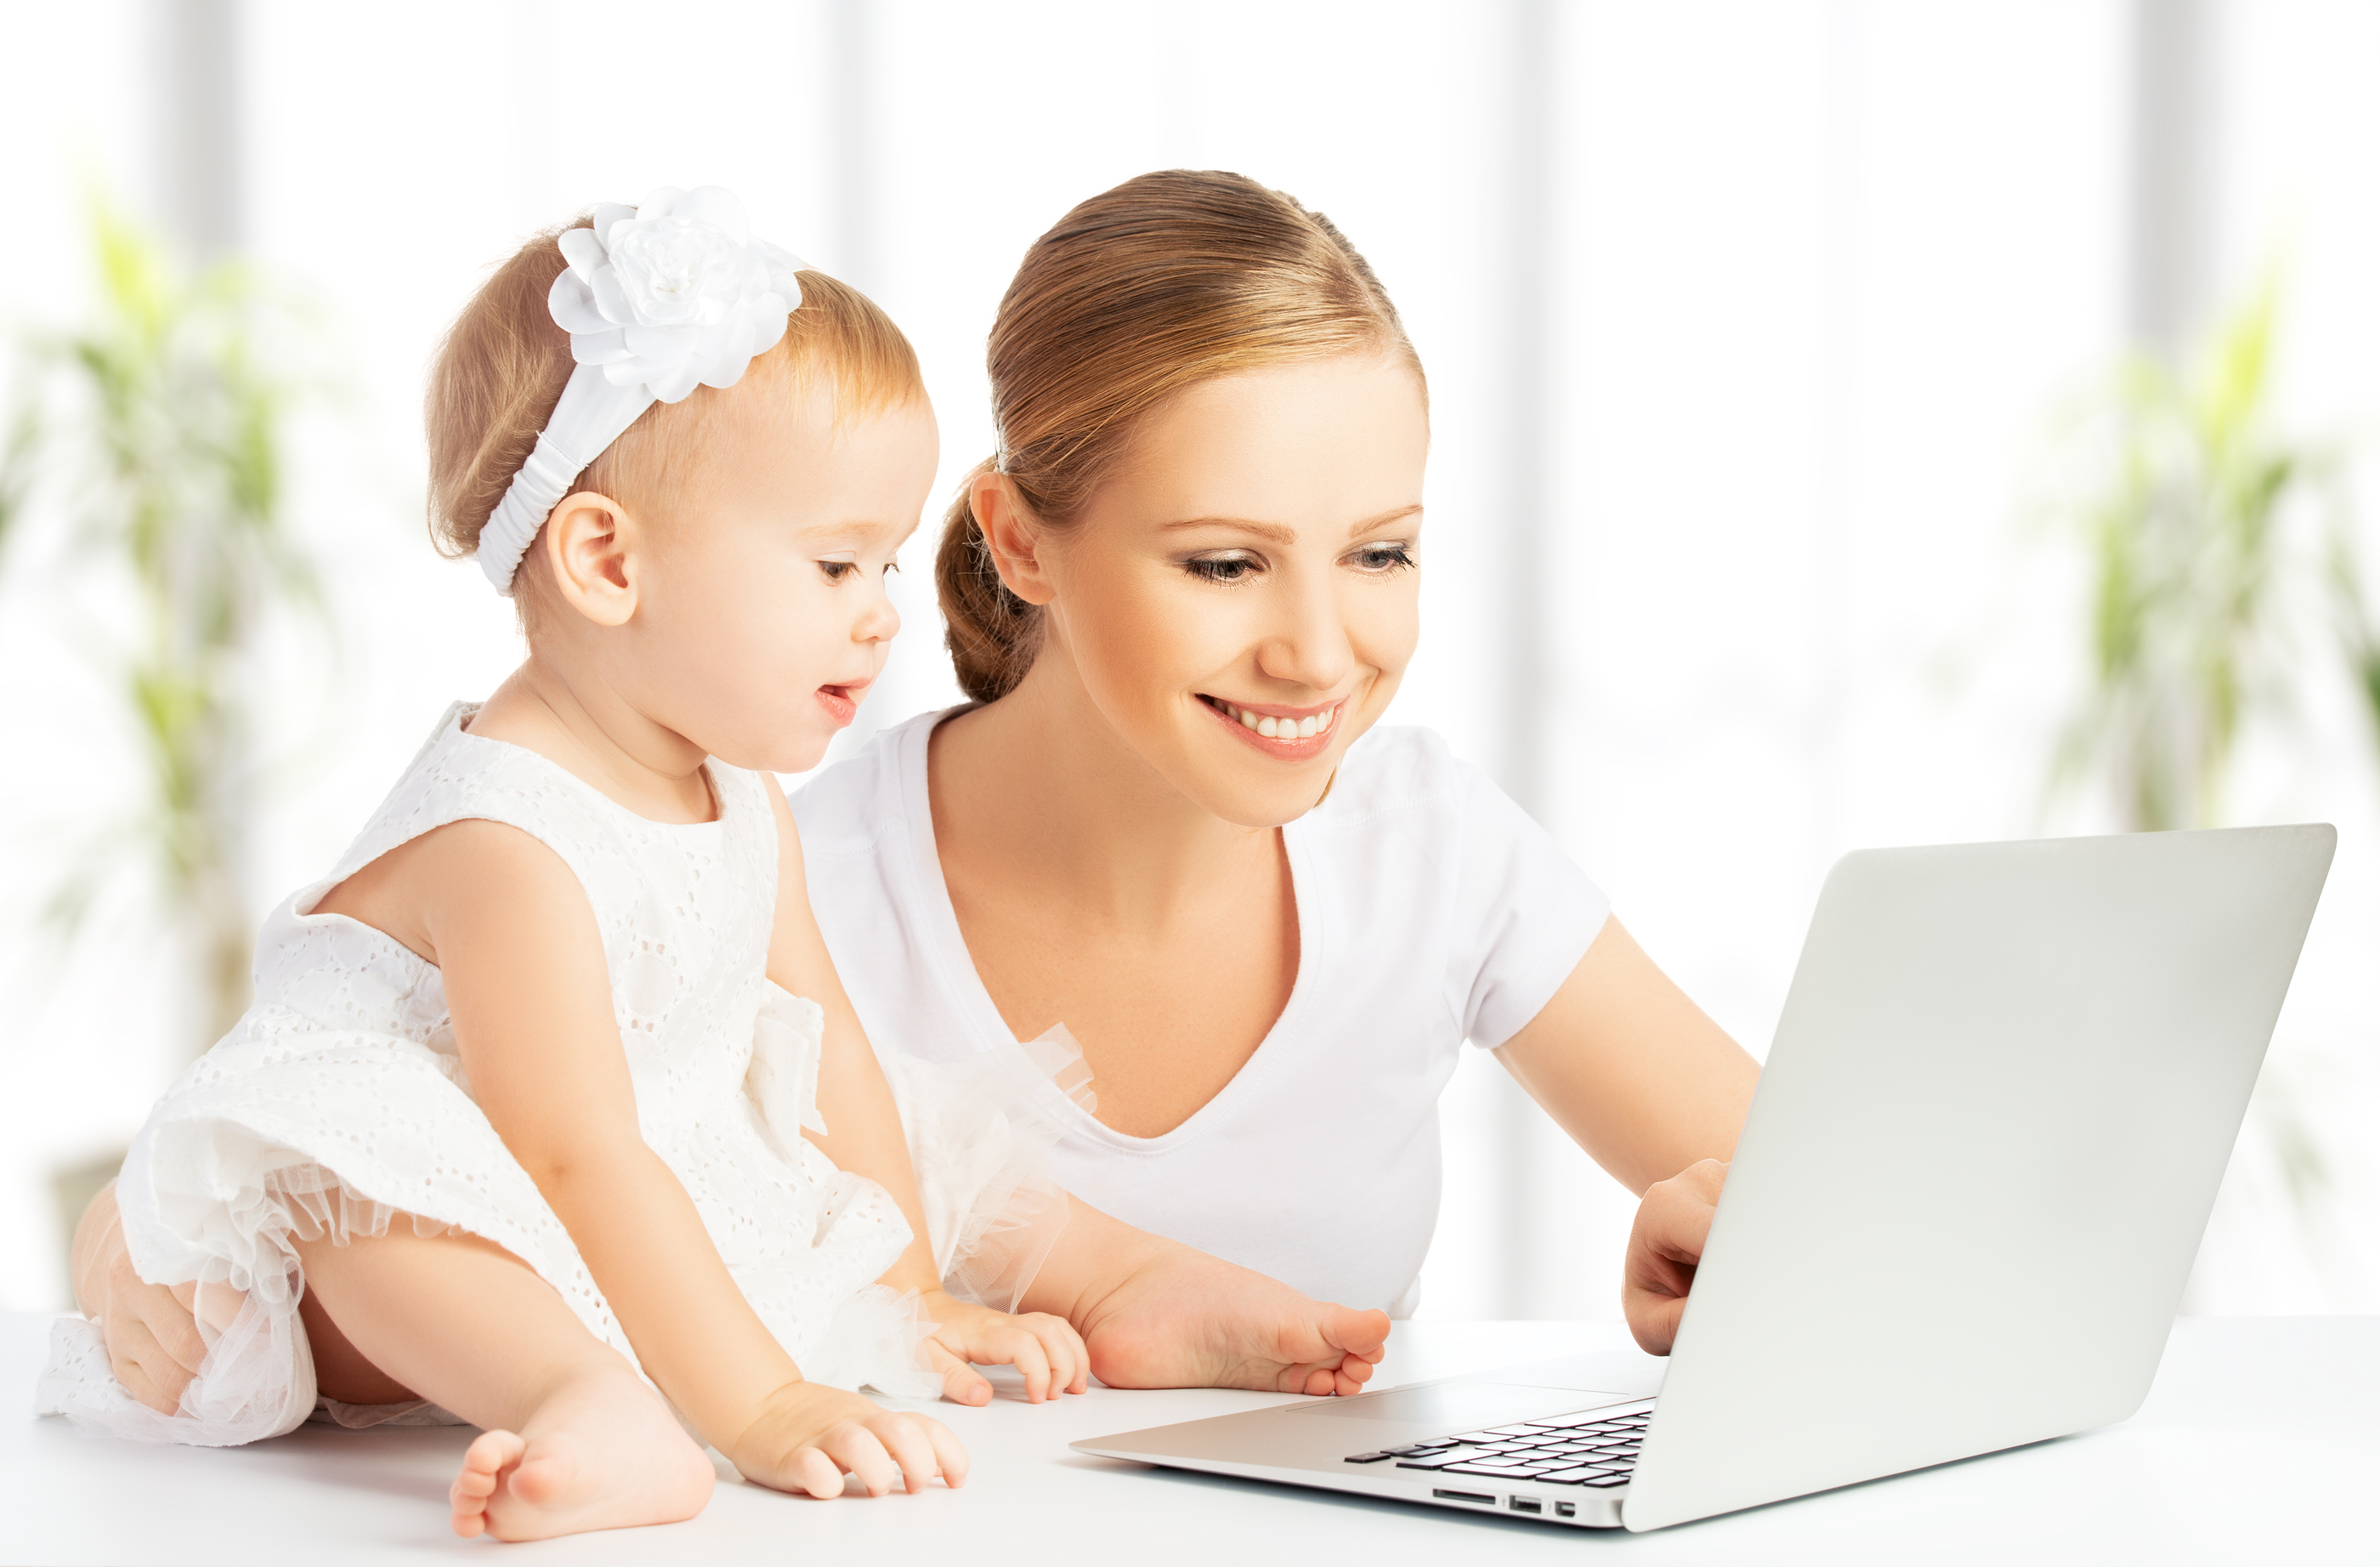 5 Simple Ways to Earn Money as a Work-At-Home Mom